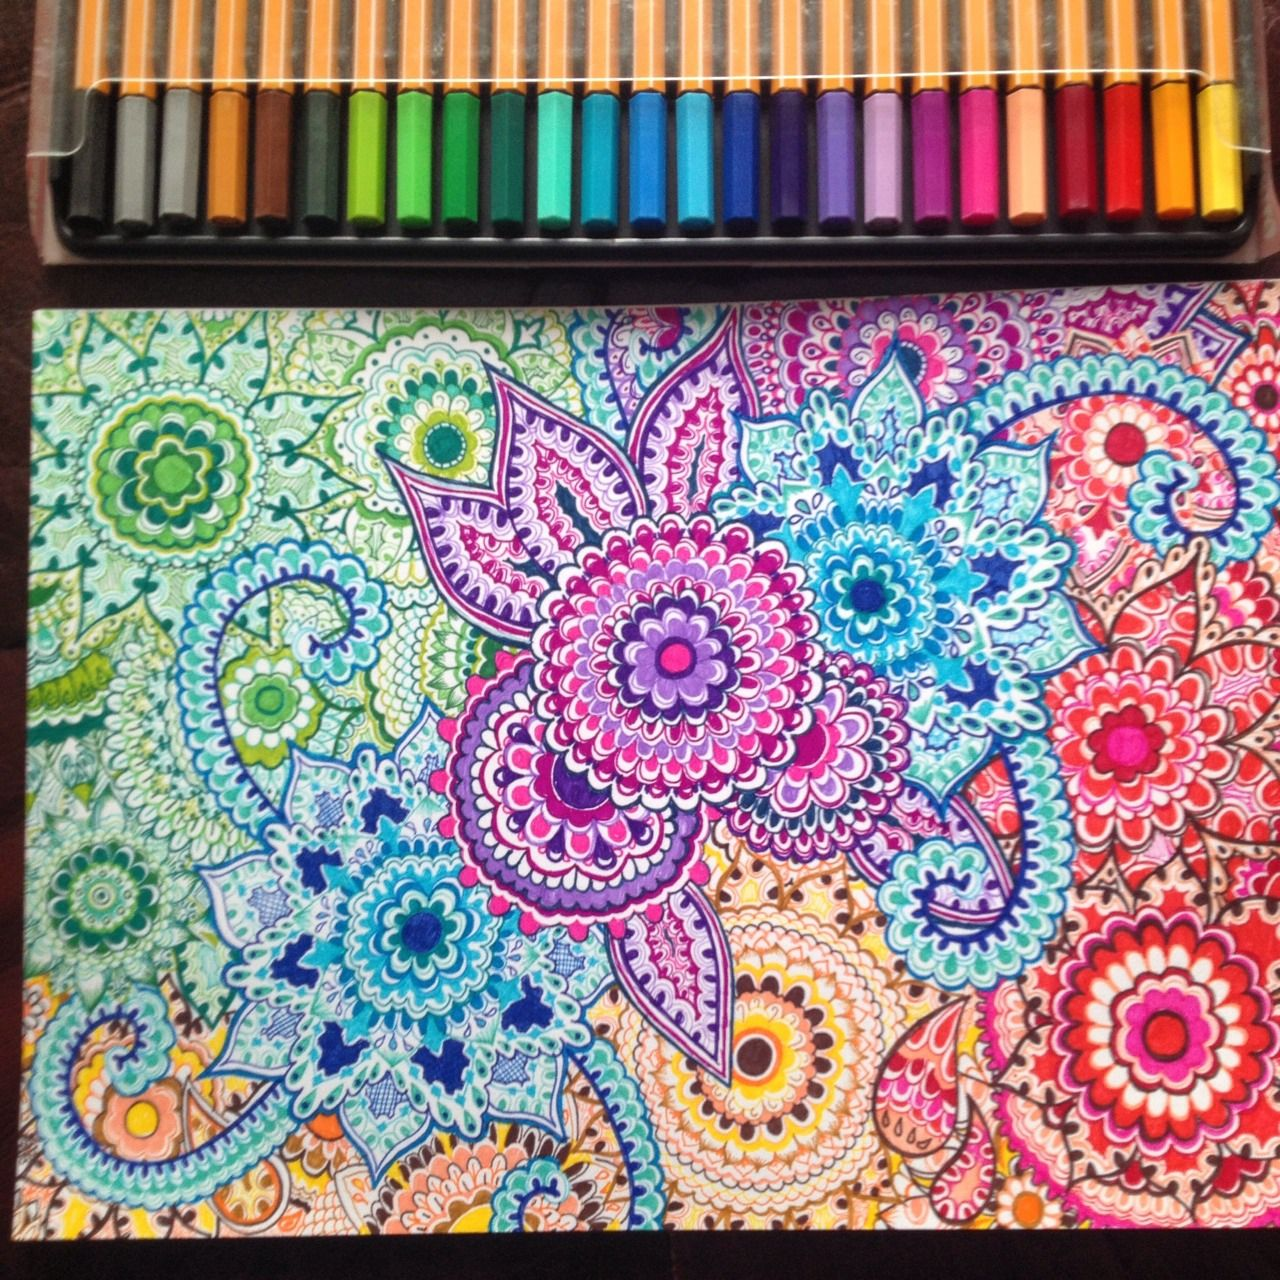 Colorful Henna Designs: Image Result For Colourful Henna Patterns On Paper